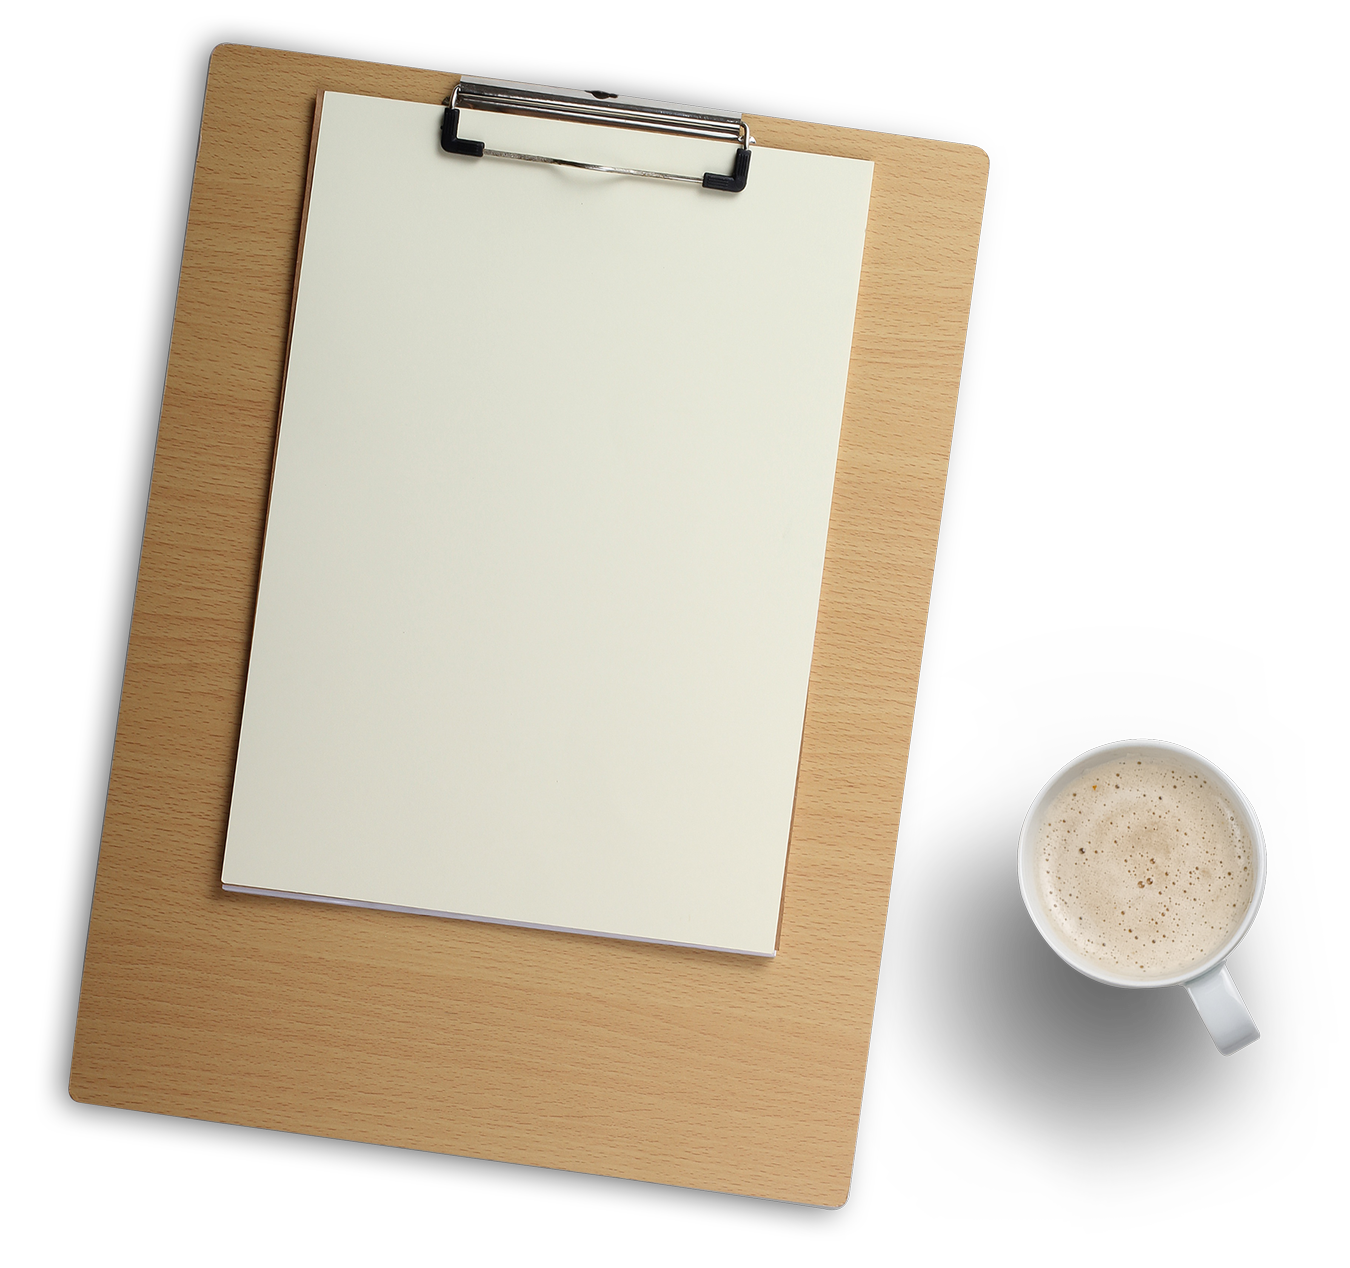 Clipboard clipart transparent background. Wood and coffee cup